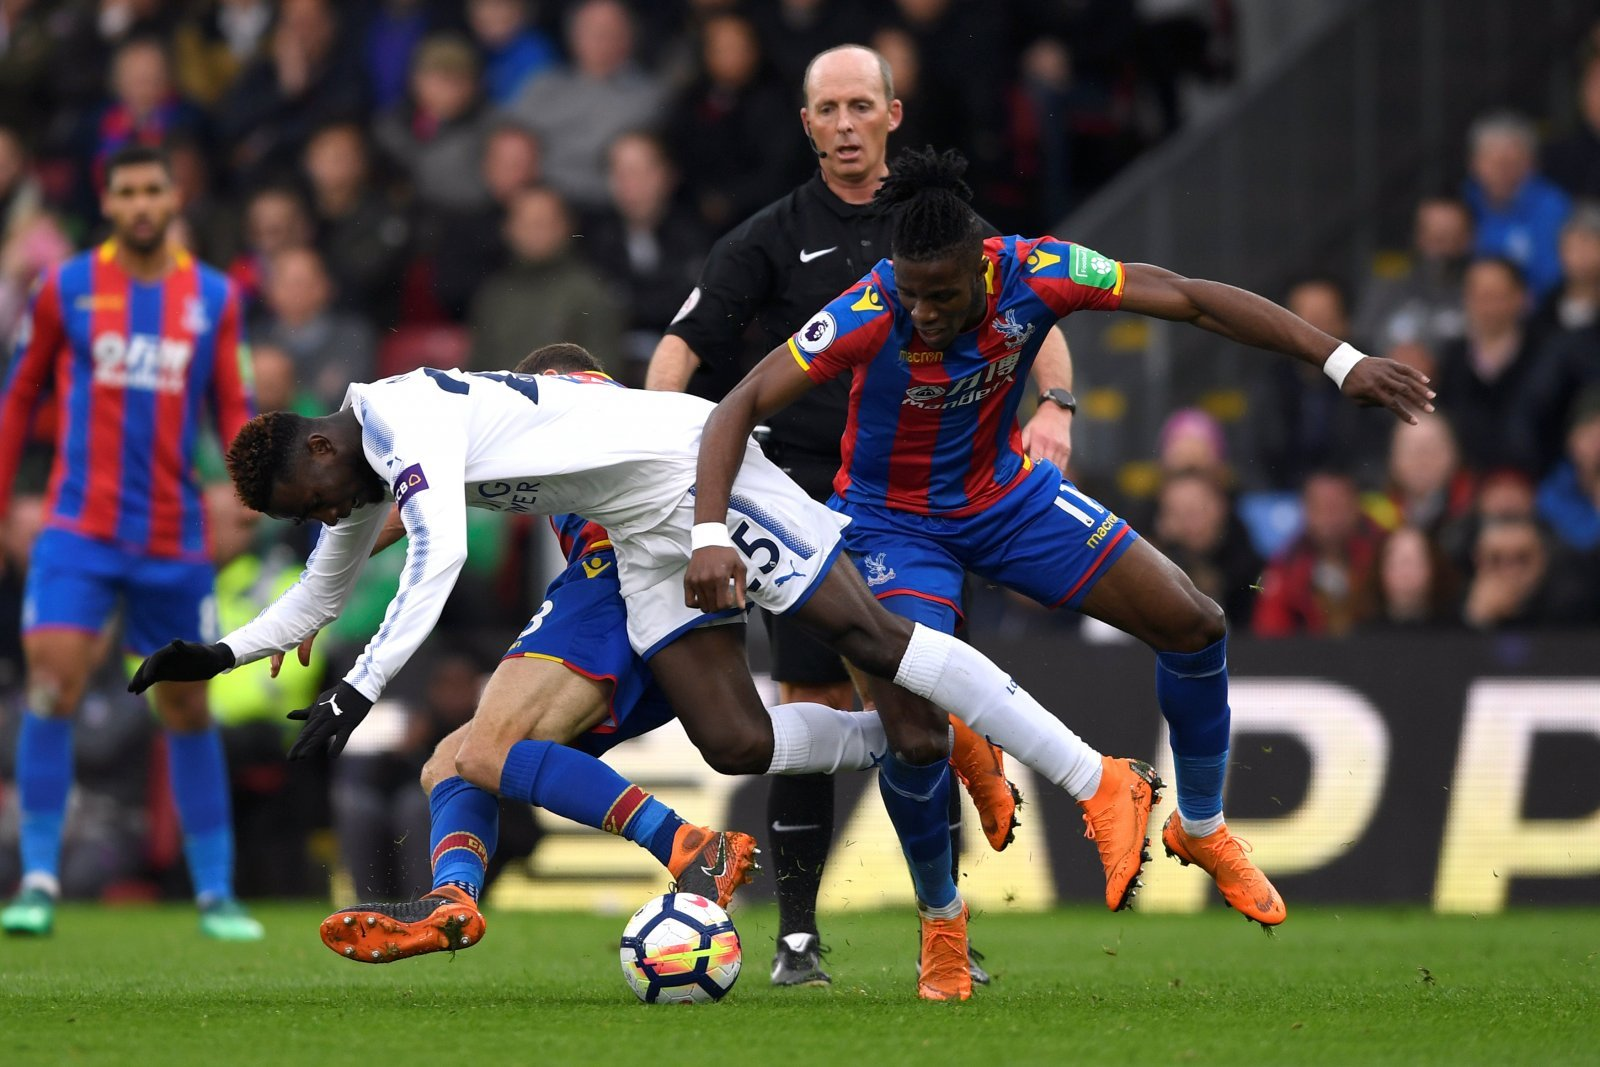 Deeney's comments on Crystal Palace star Zaha should be a wake up call for referees